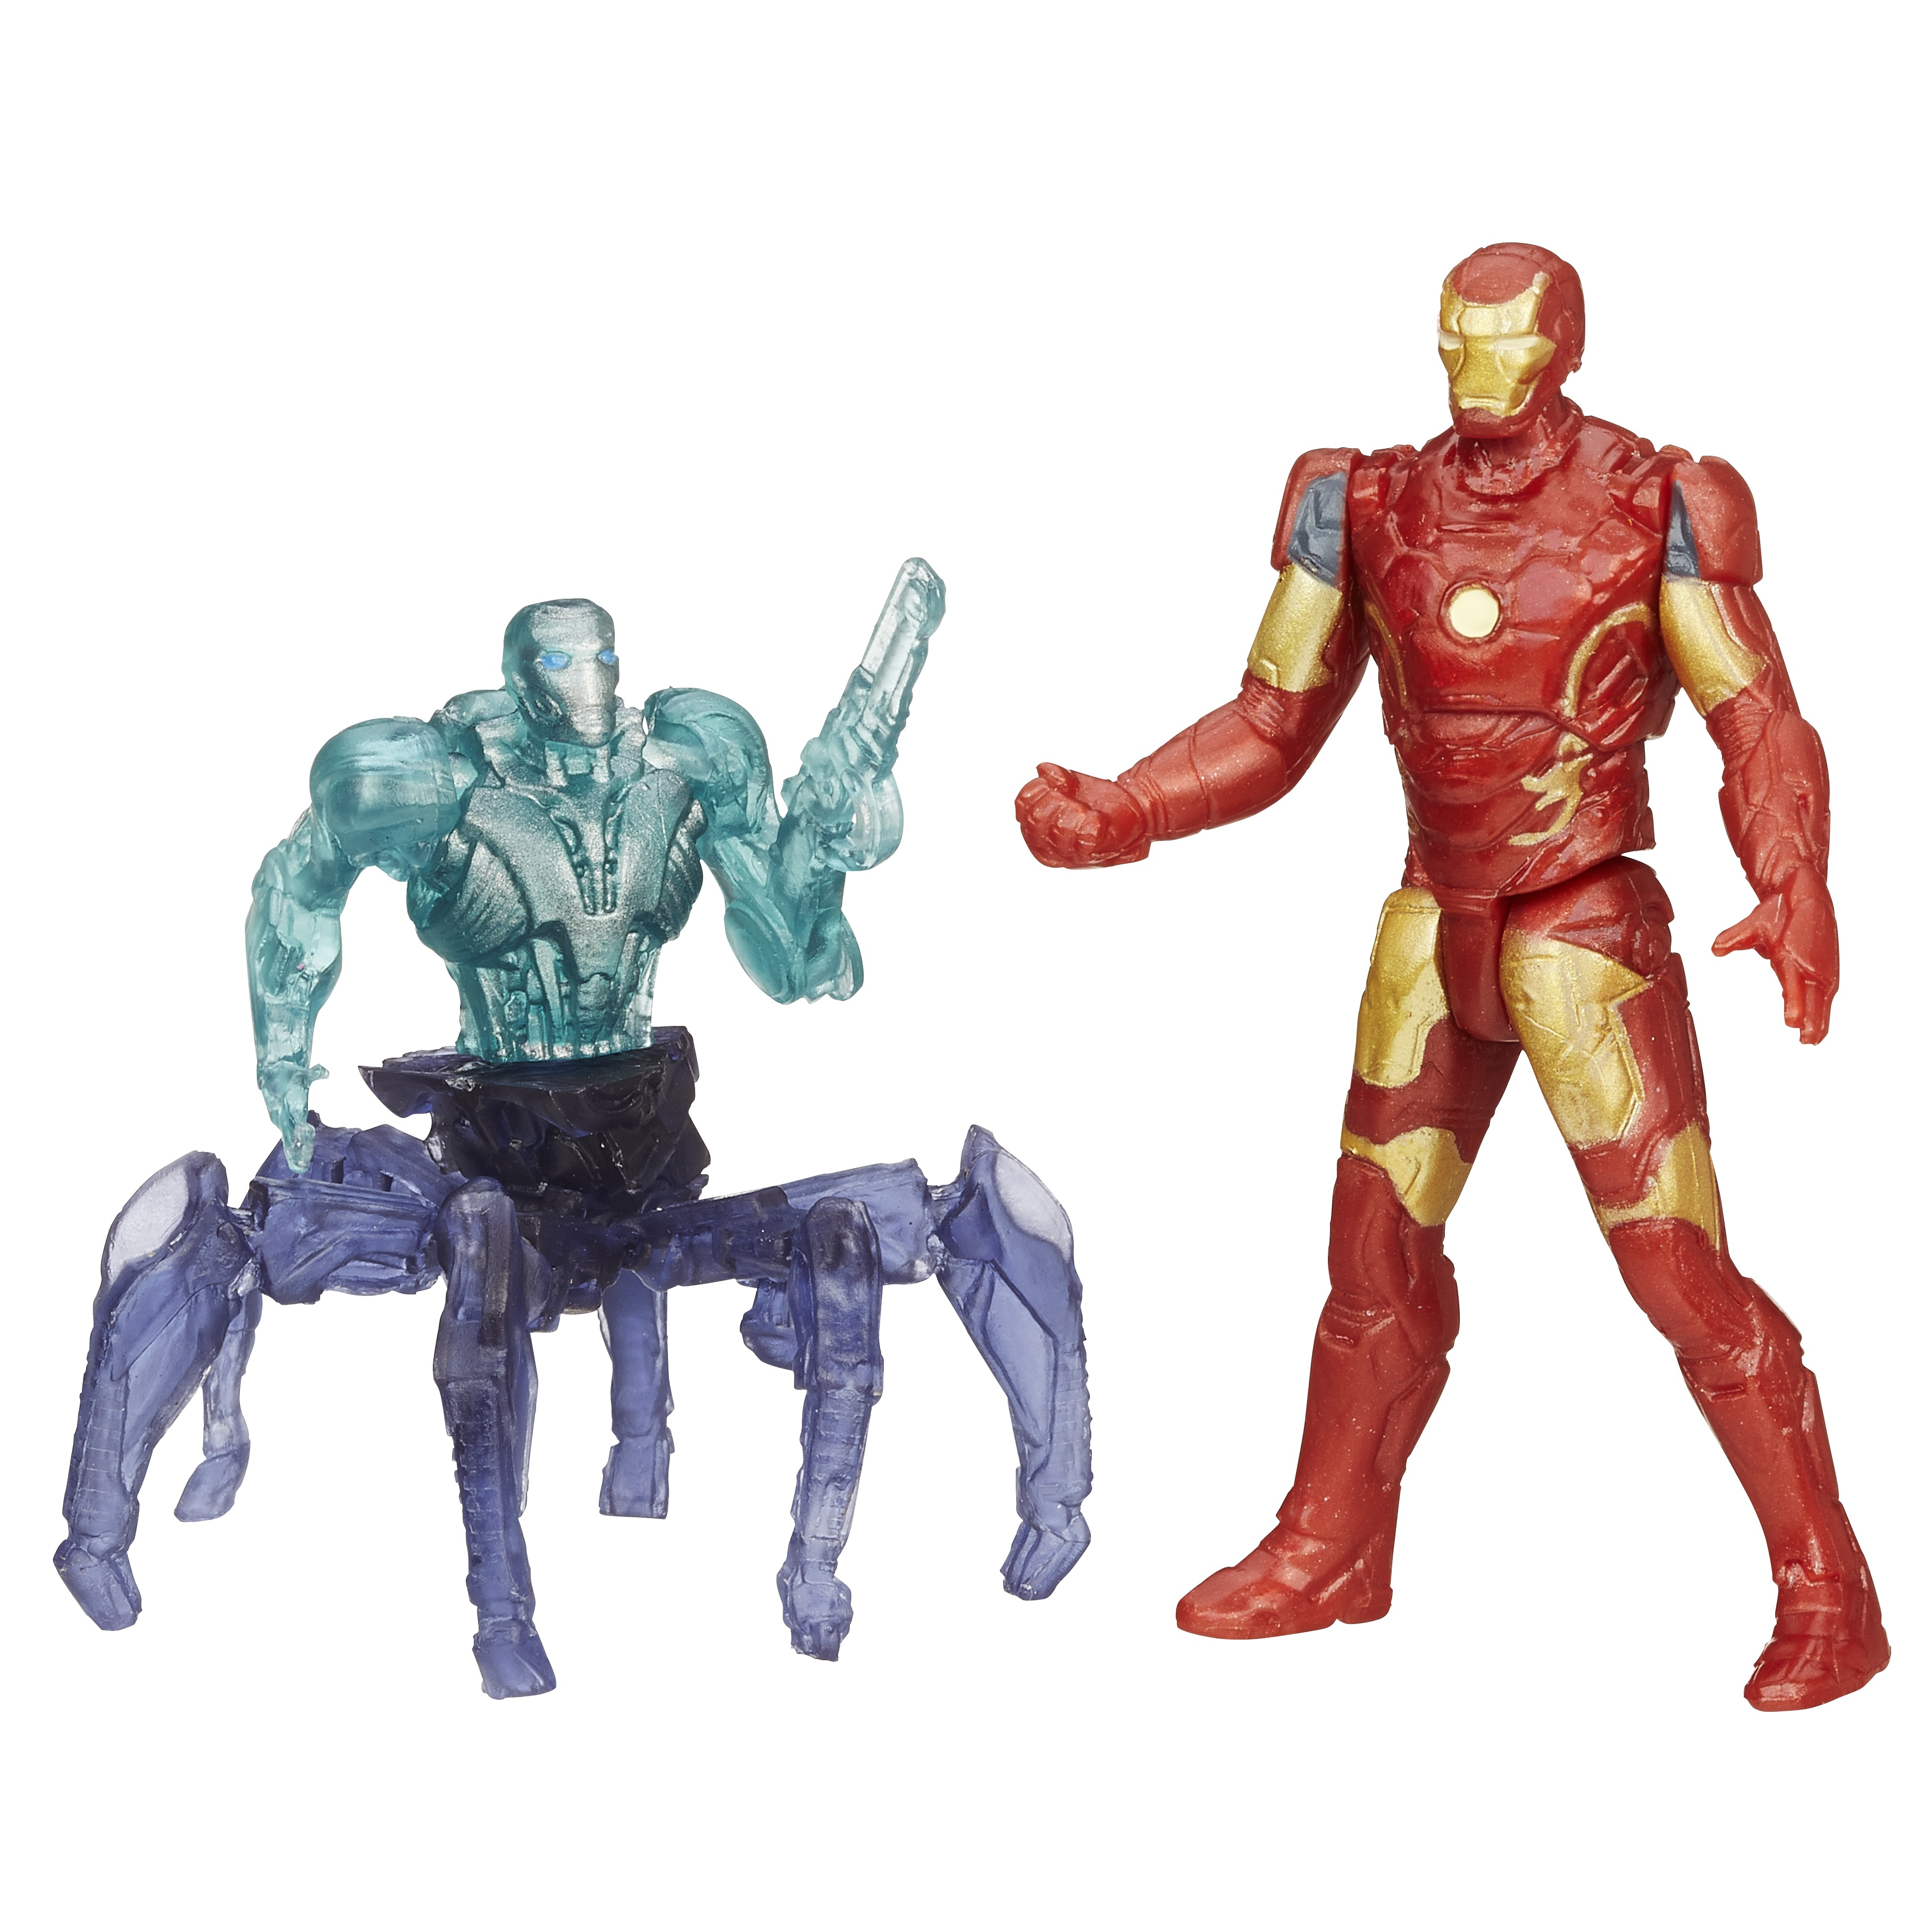 Check Out Hasbro's Avengers: Age of Ultron Toys! - Graphic ...